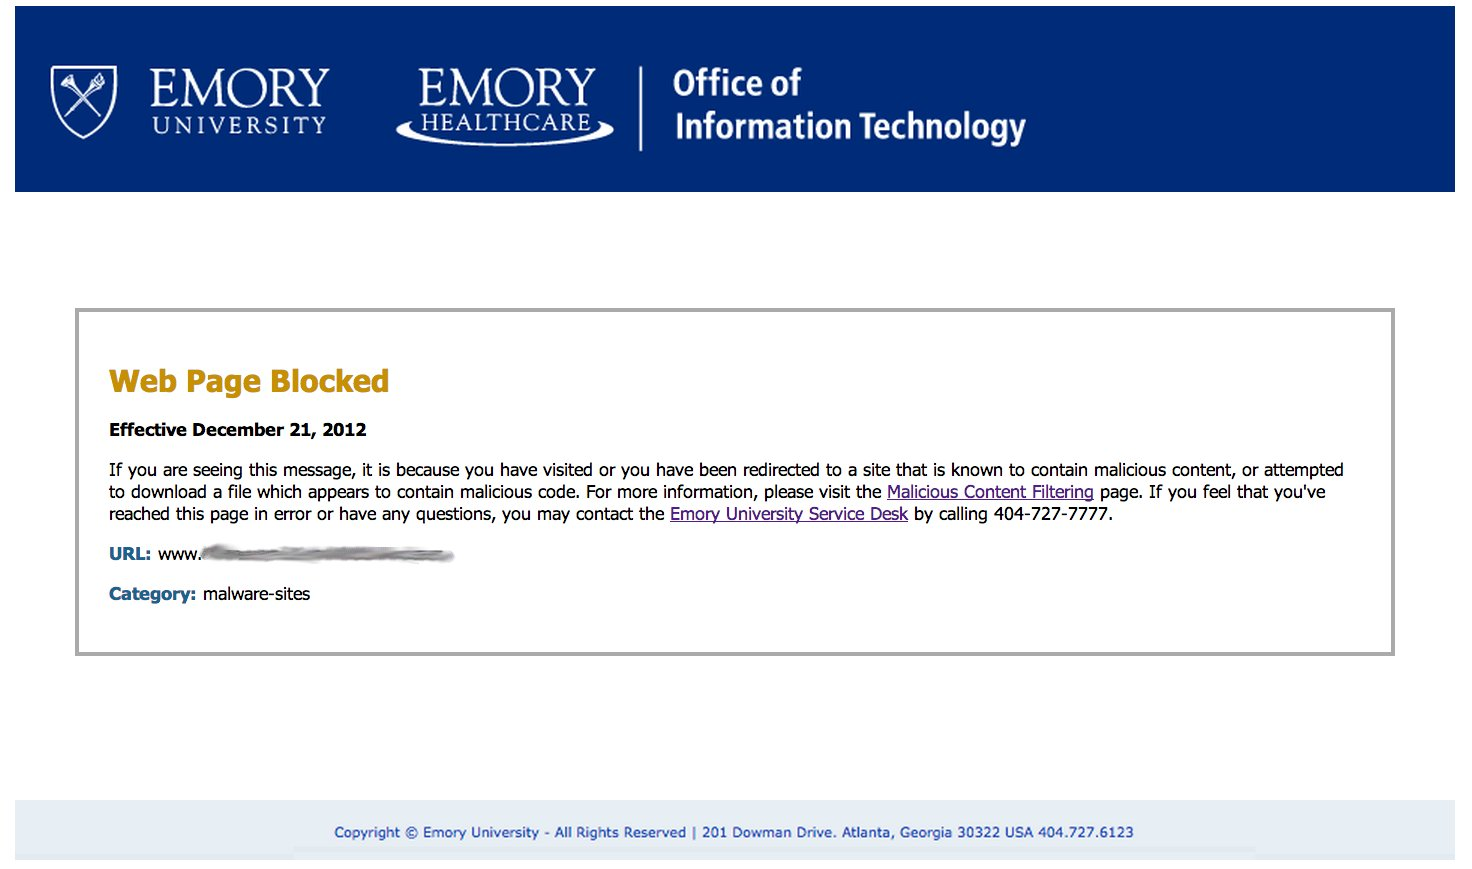 Emory LITS: Information Technology